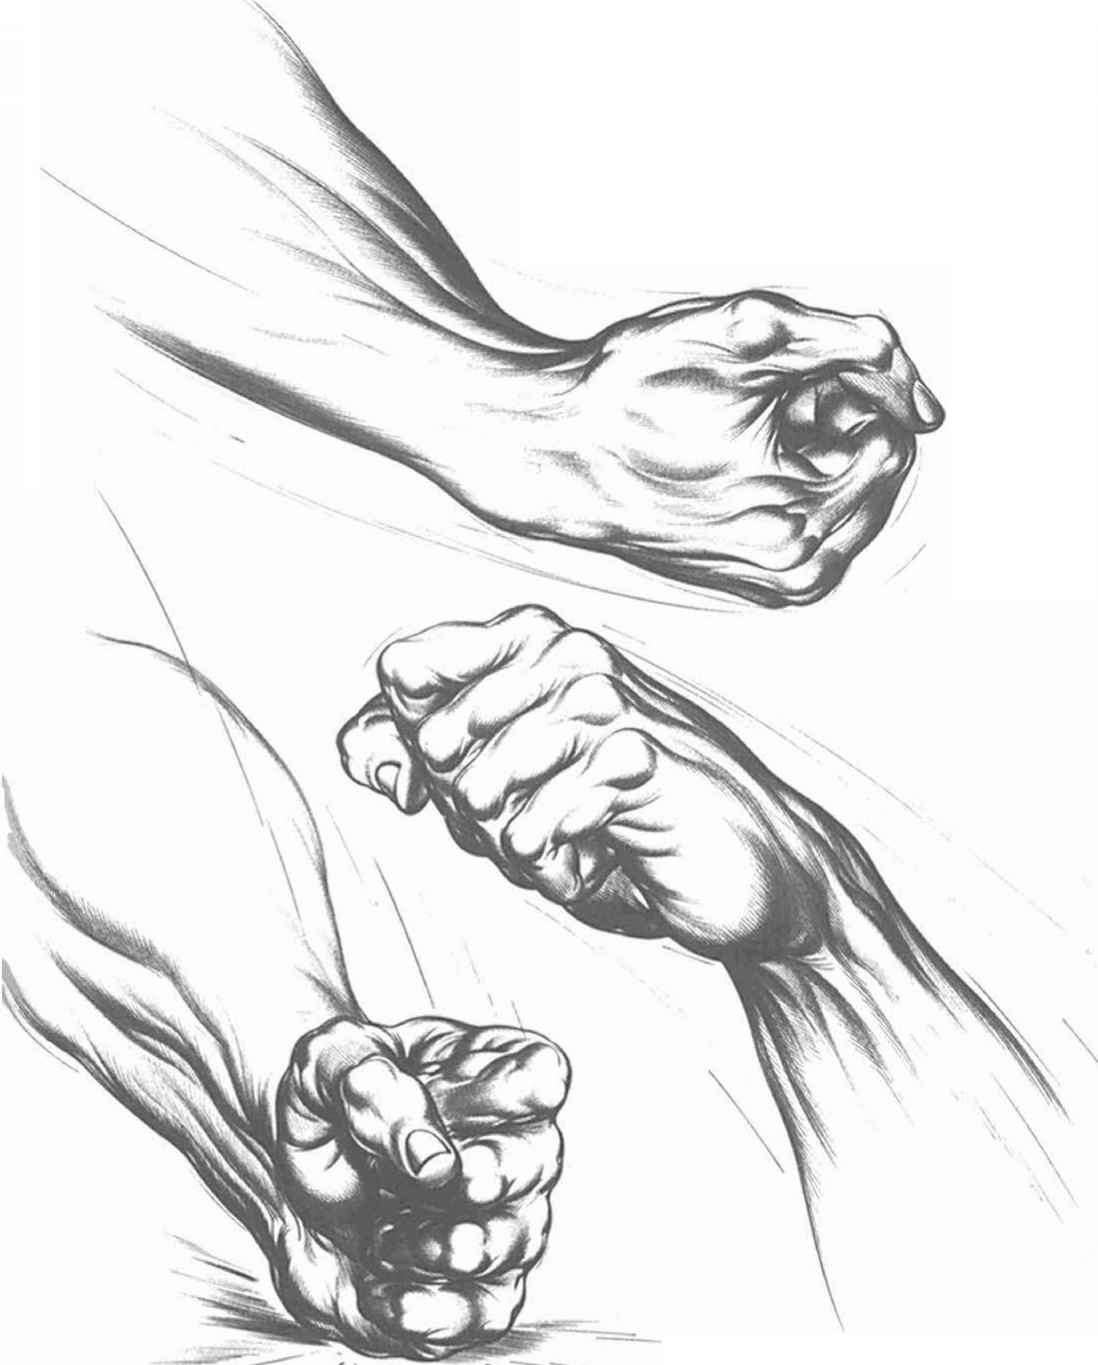 1098x1365 Drawing Of A Fist The Clenched Fist